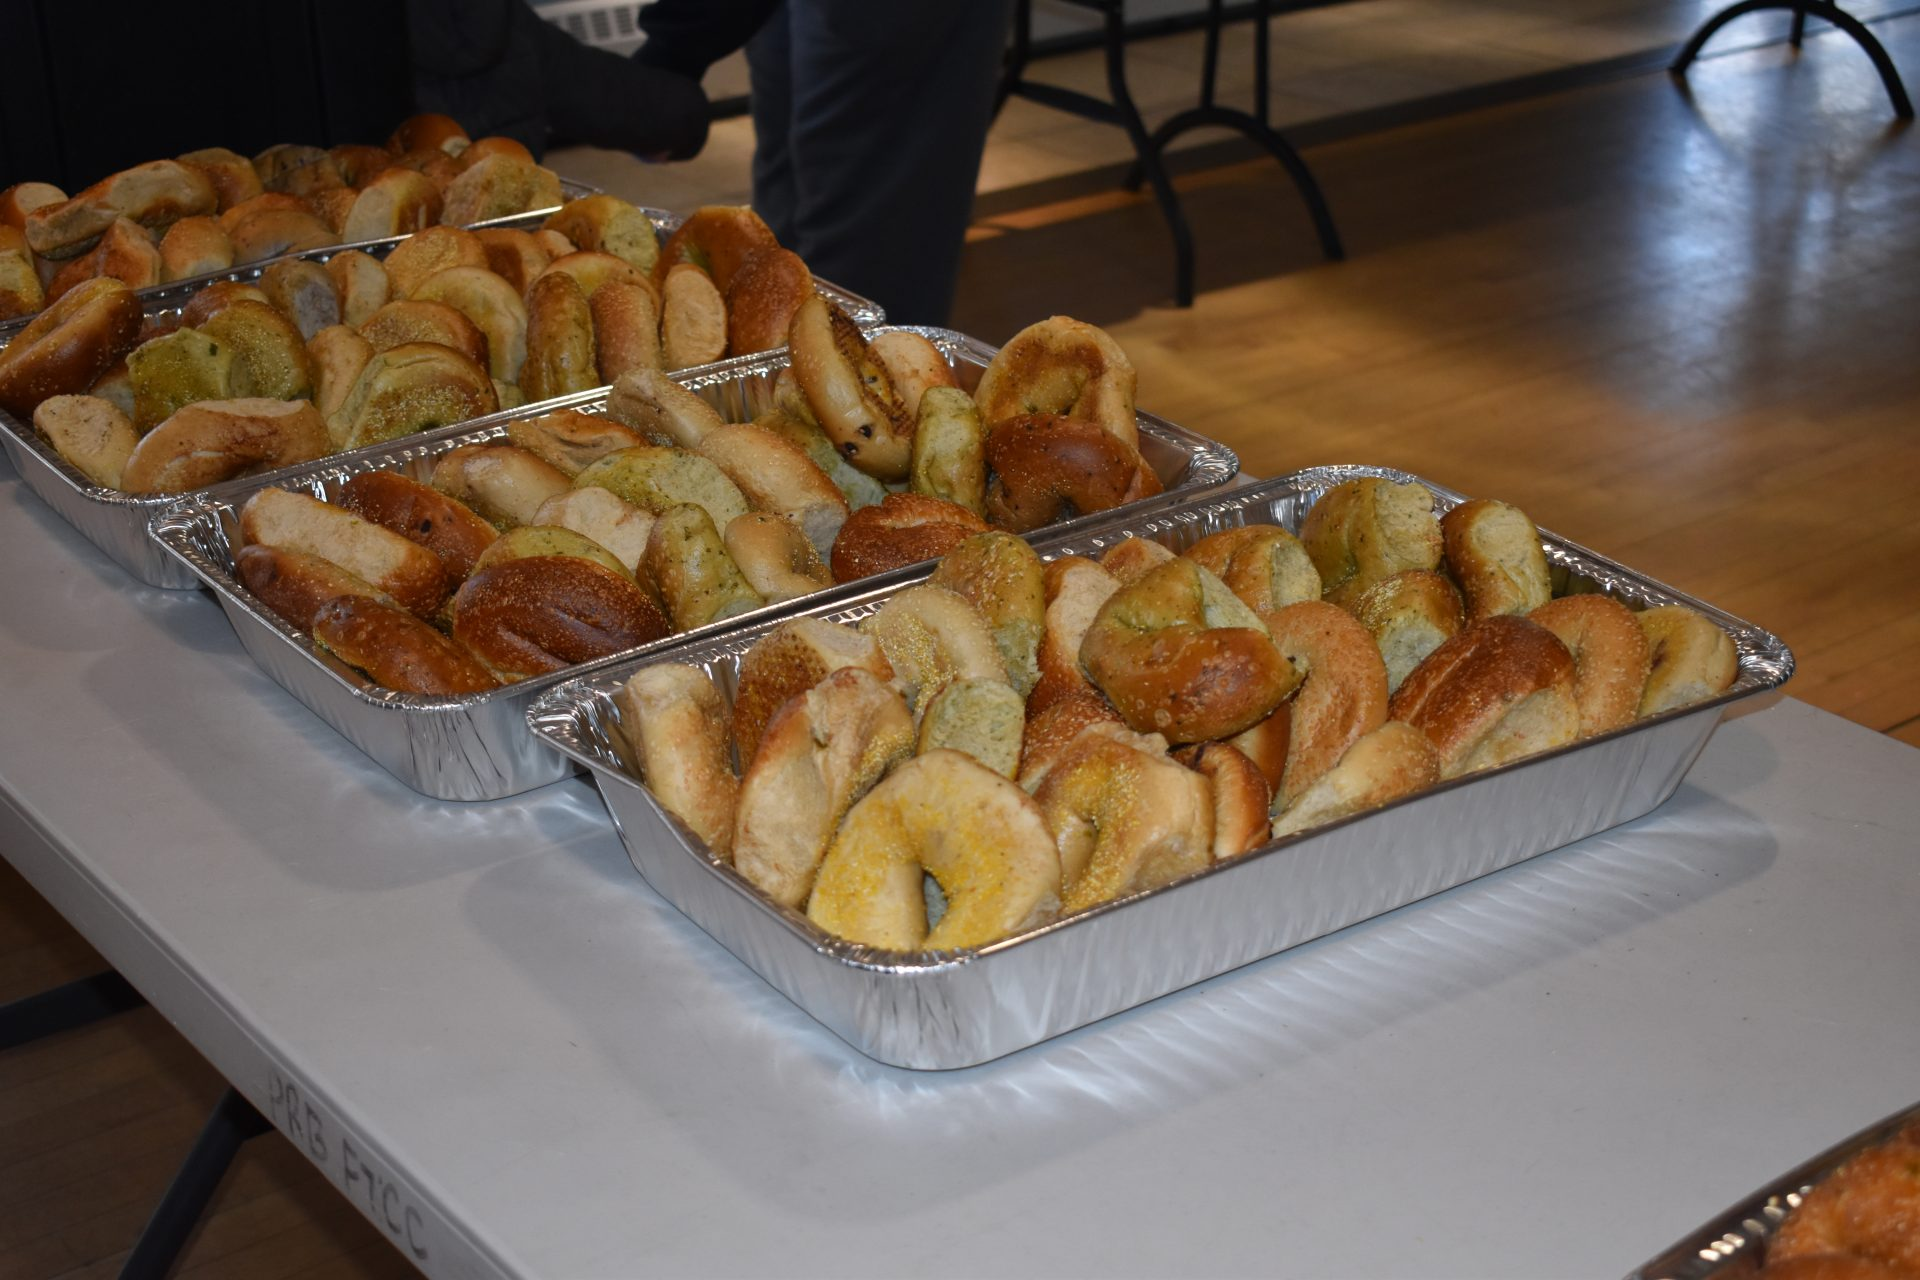 Breakfast Provided At Polar Plunge - Bagels